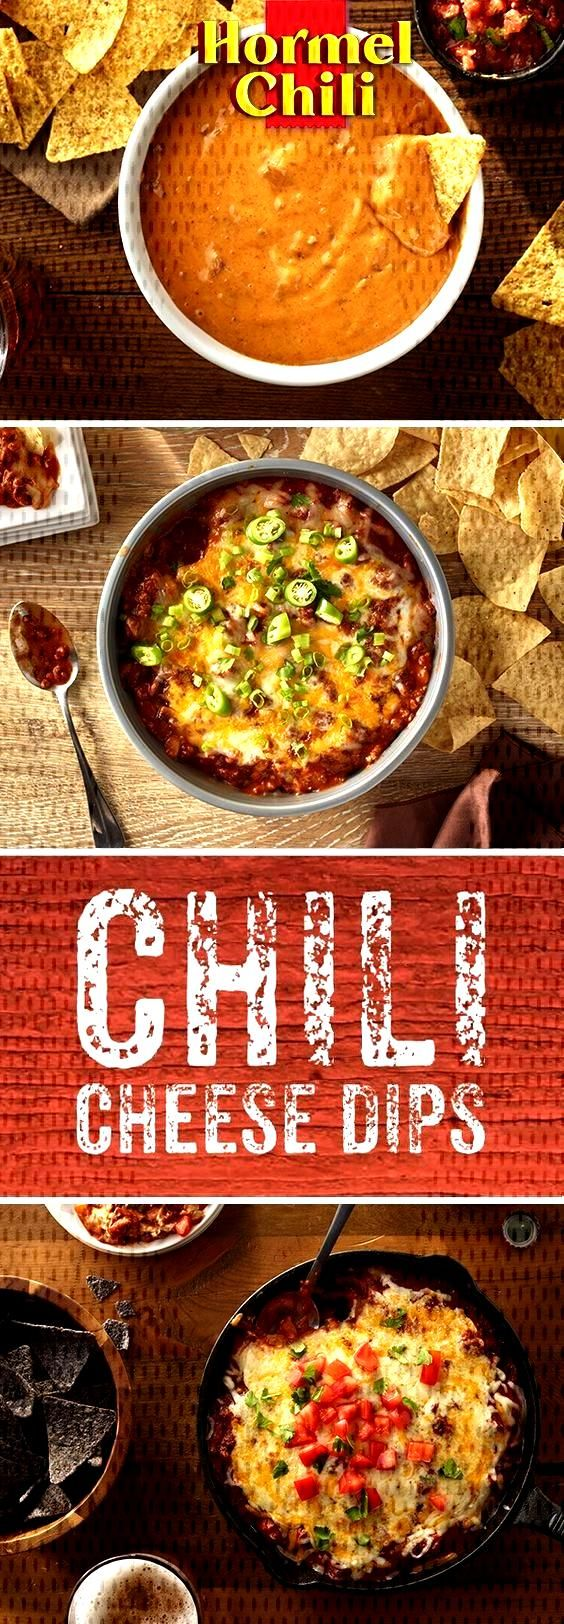 Chili Cheese Dips Chili Cheese Dips  HORMEL® Chili  hormelchili HORMEL® Chili Game Day Come on in